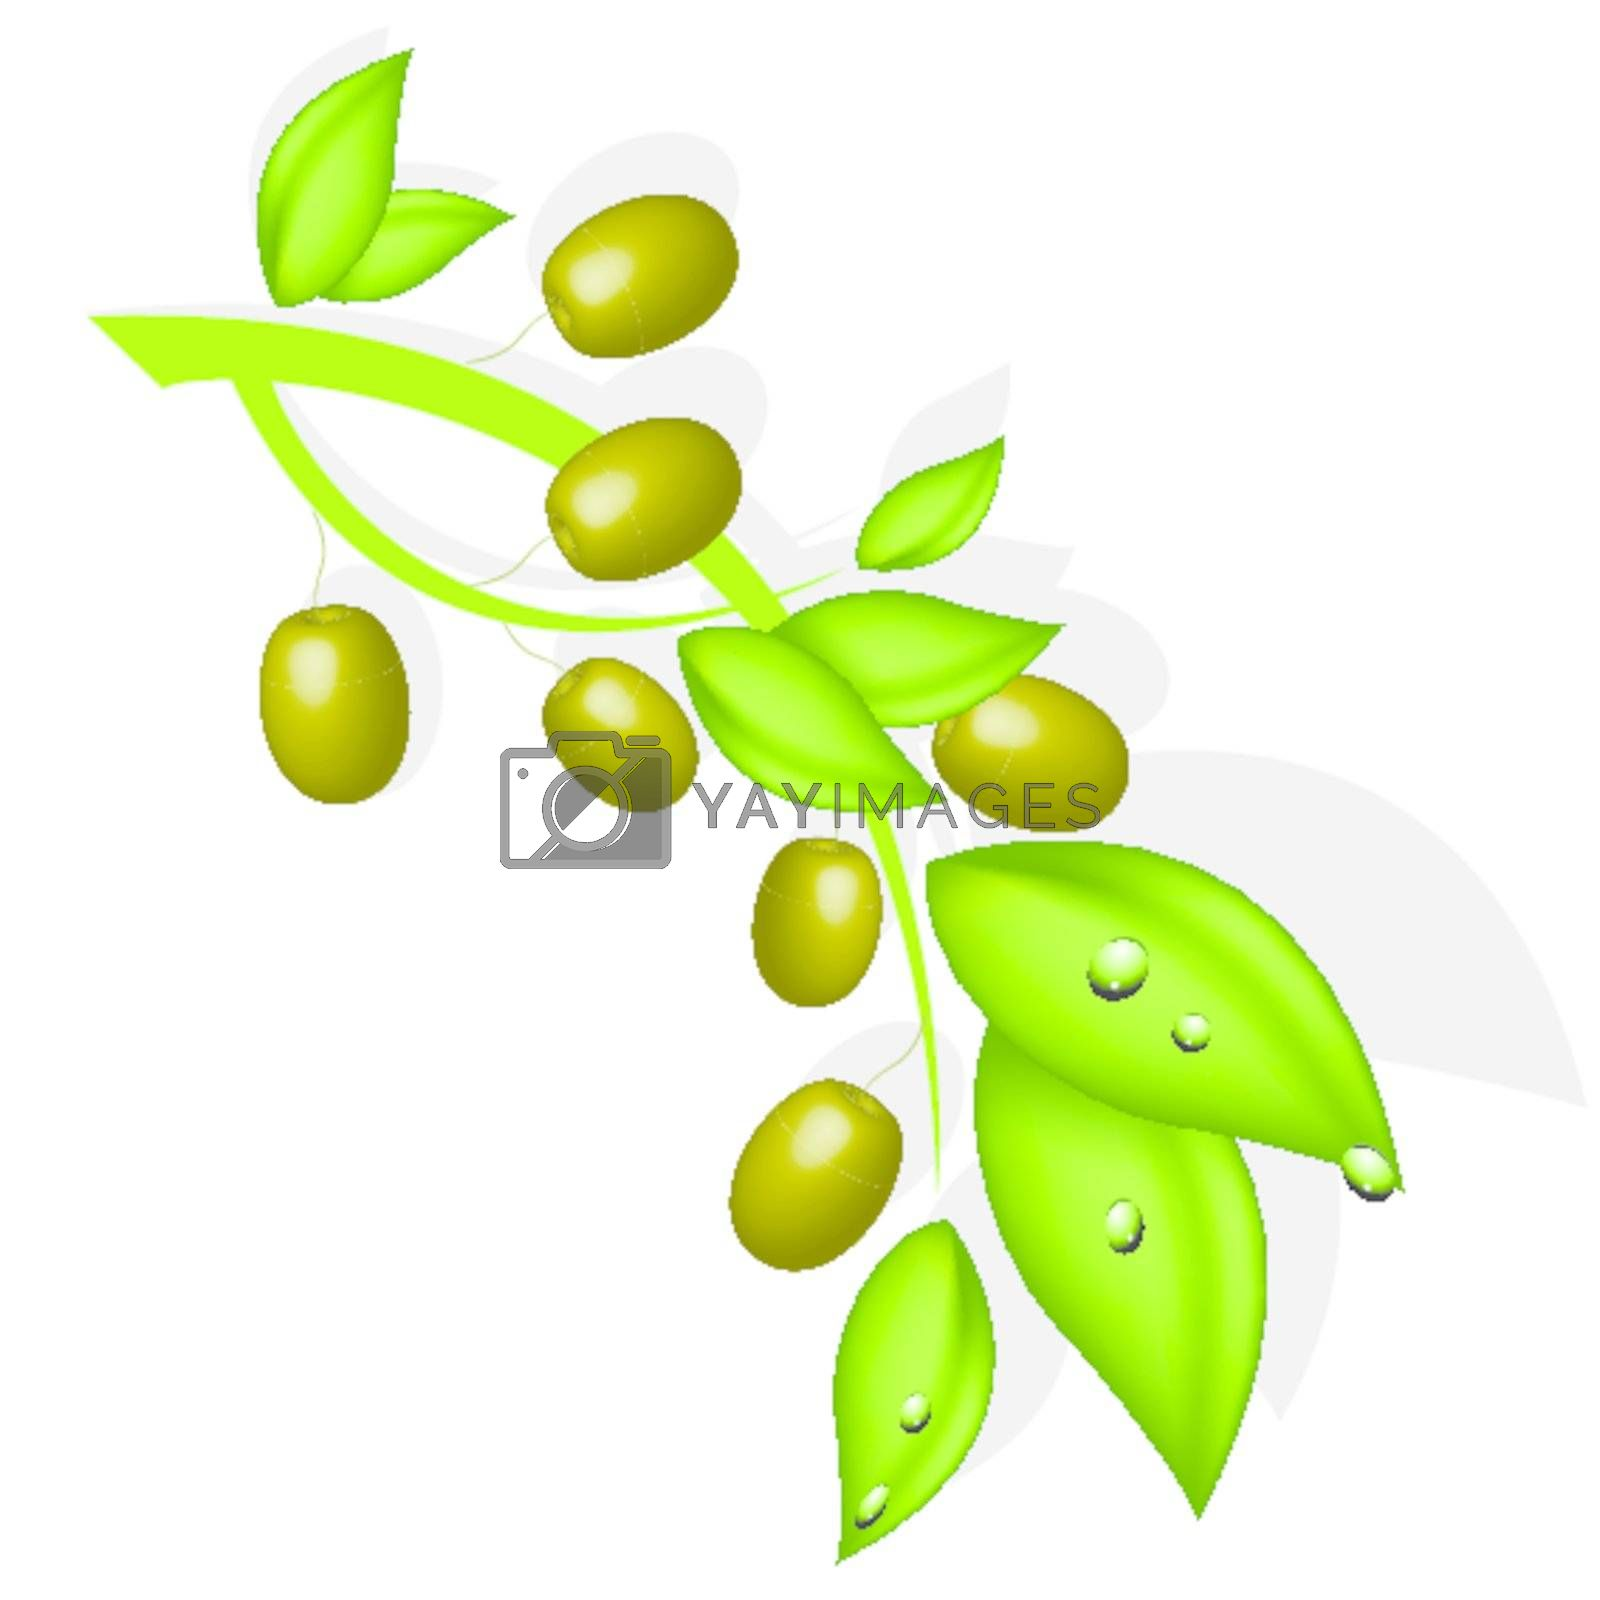 illustration, branch with olive on white background